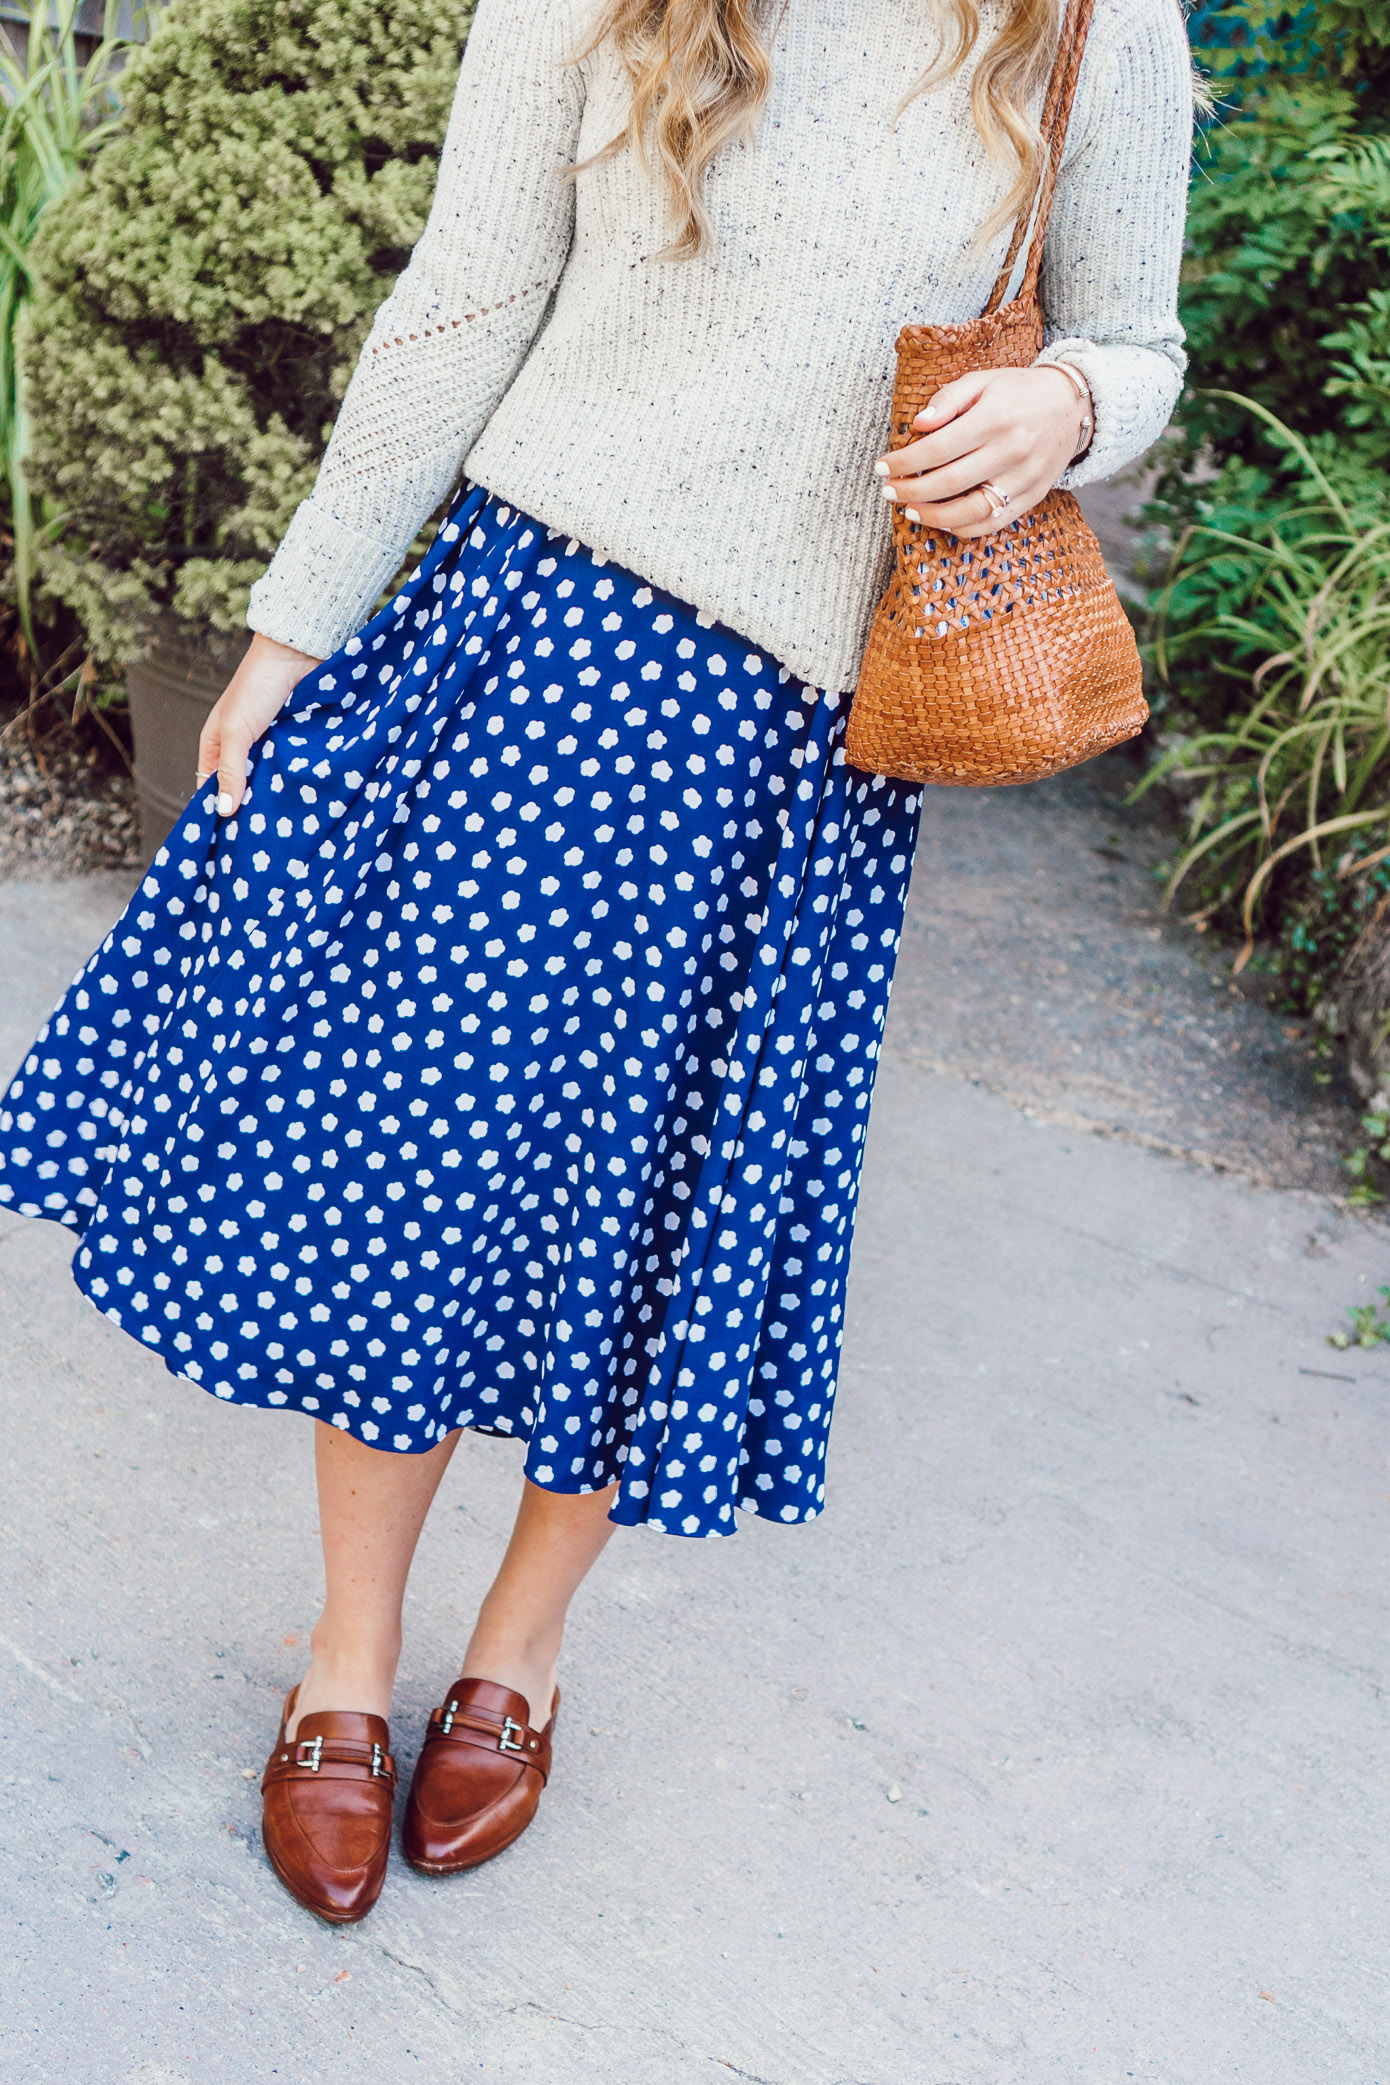 Fall Polka Dots | Kate Spade New York Cloud Dot Midi Dress and Two24 by Ariat Jubilee Mules styled on Louella Reese